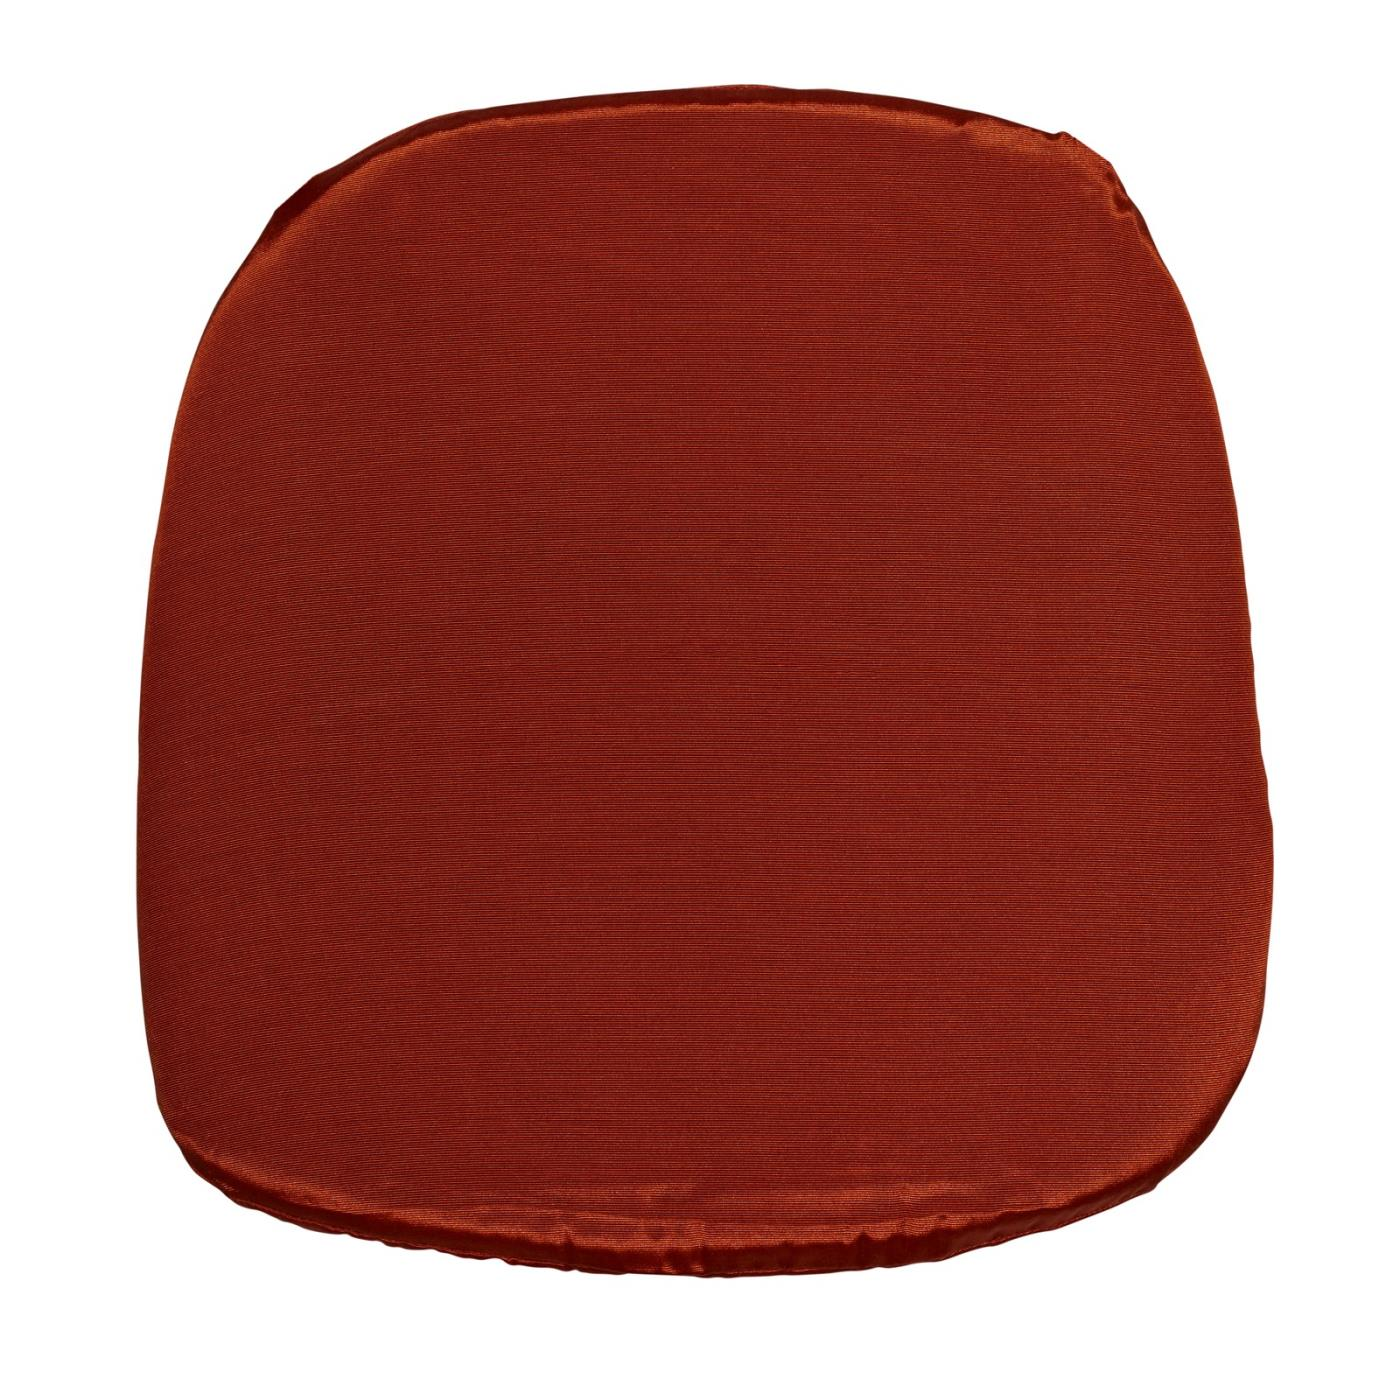 Bengaline Seat Cushion - Toast